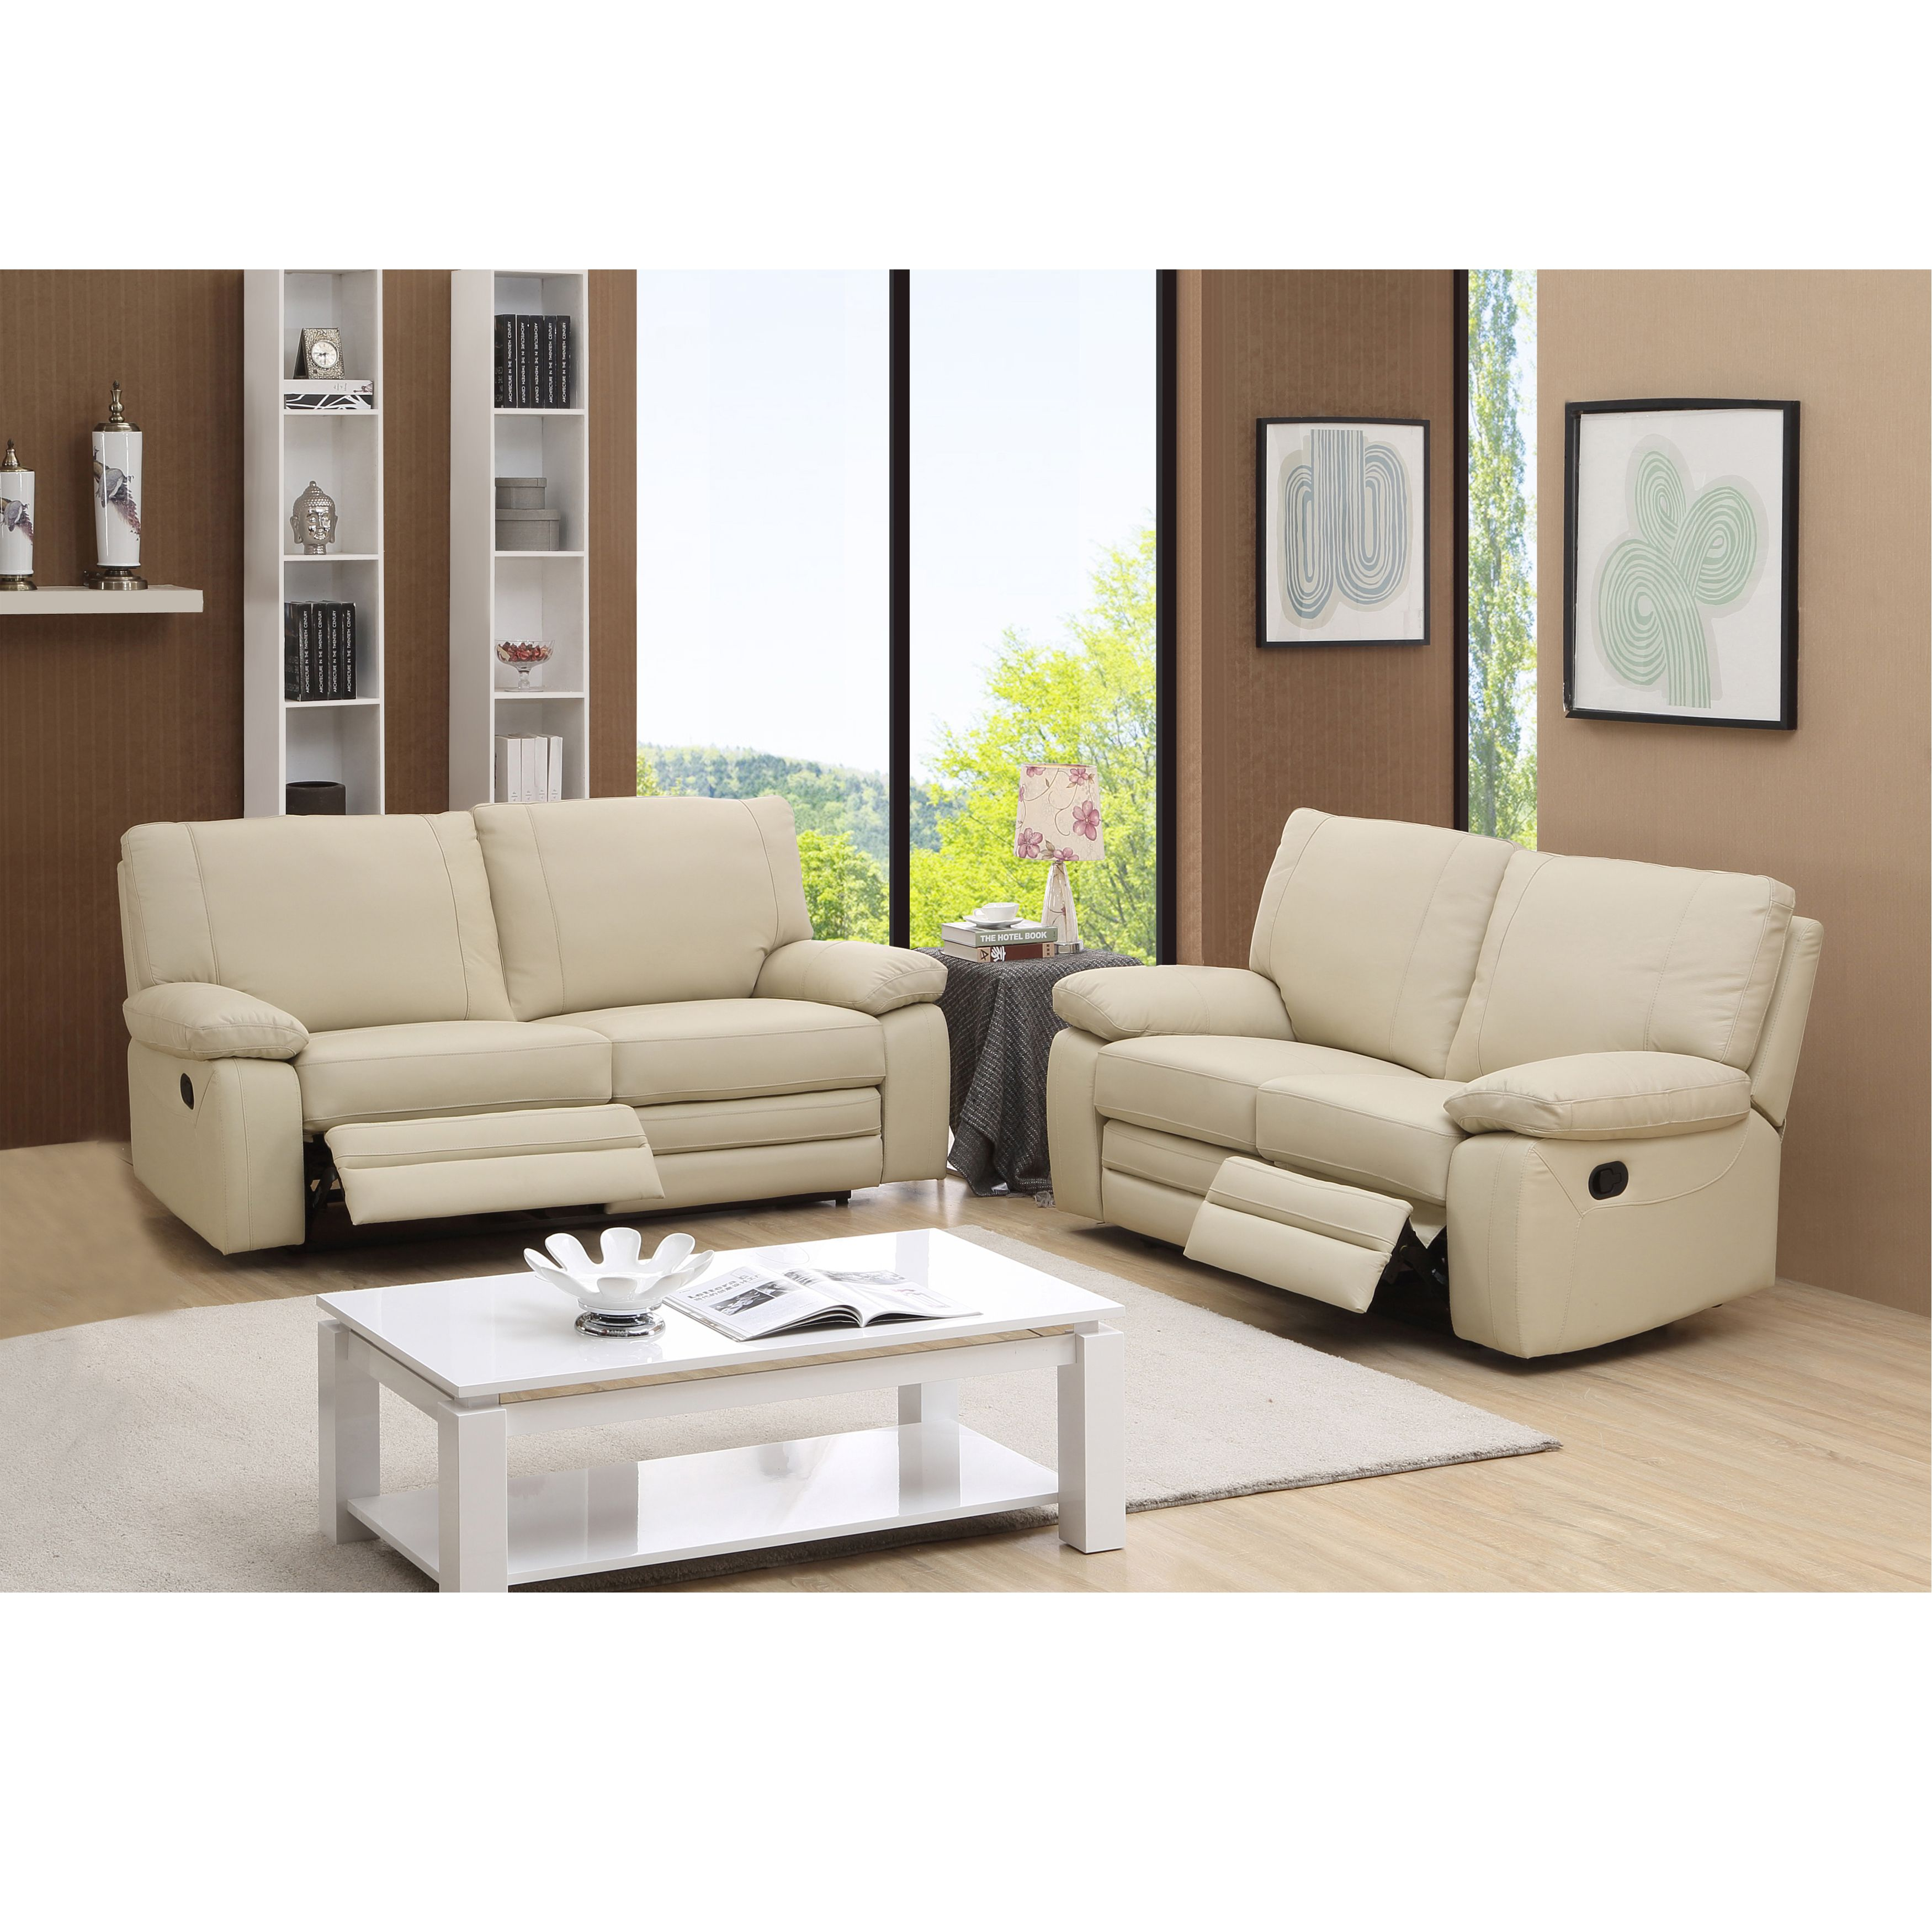 Relax in fort and style with this ultra premium reclining